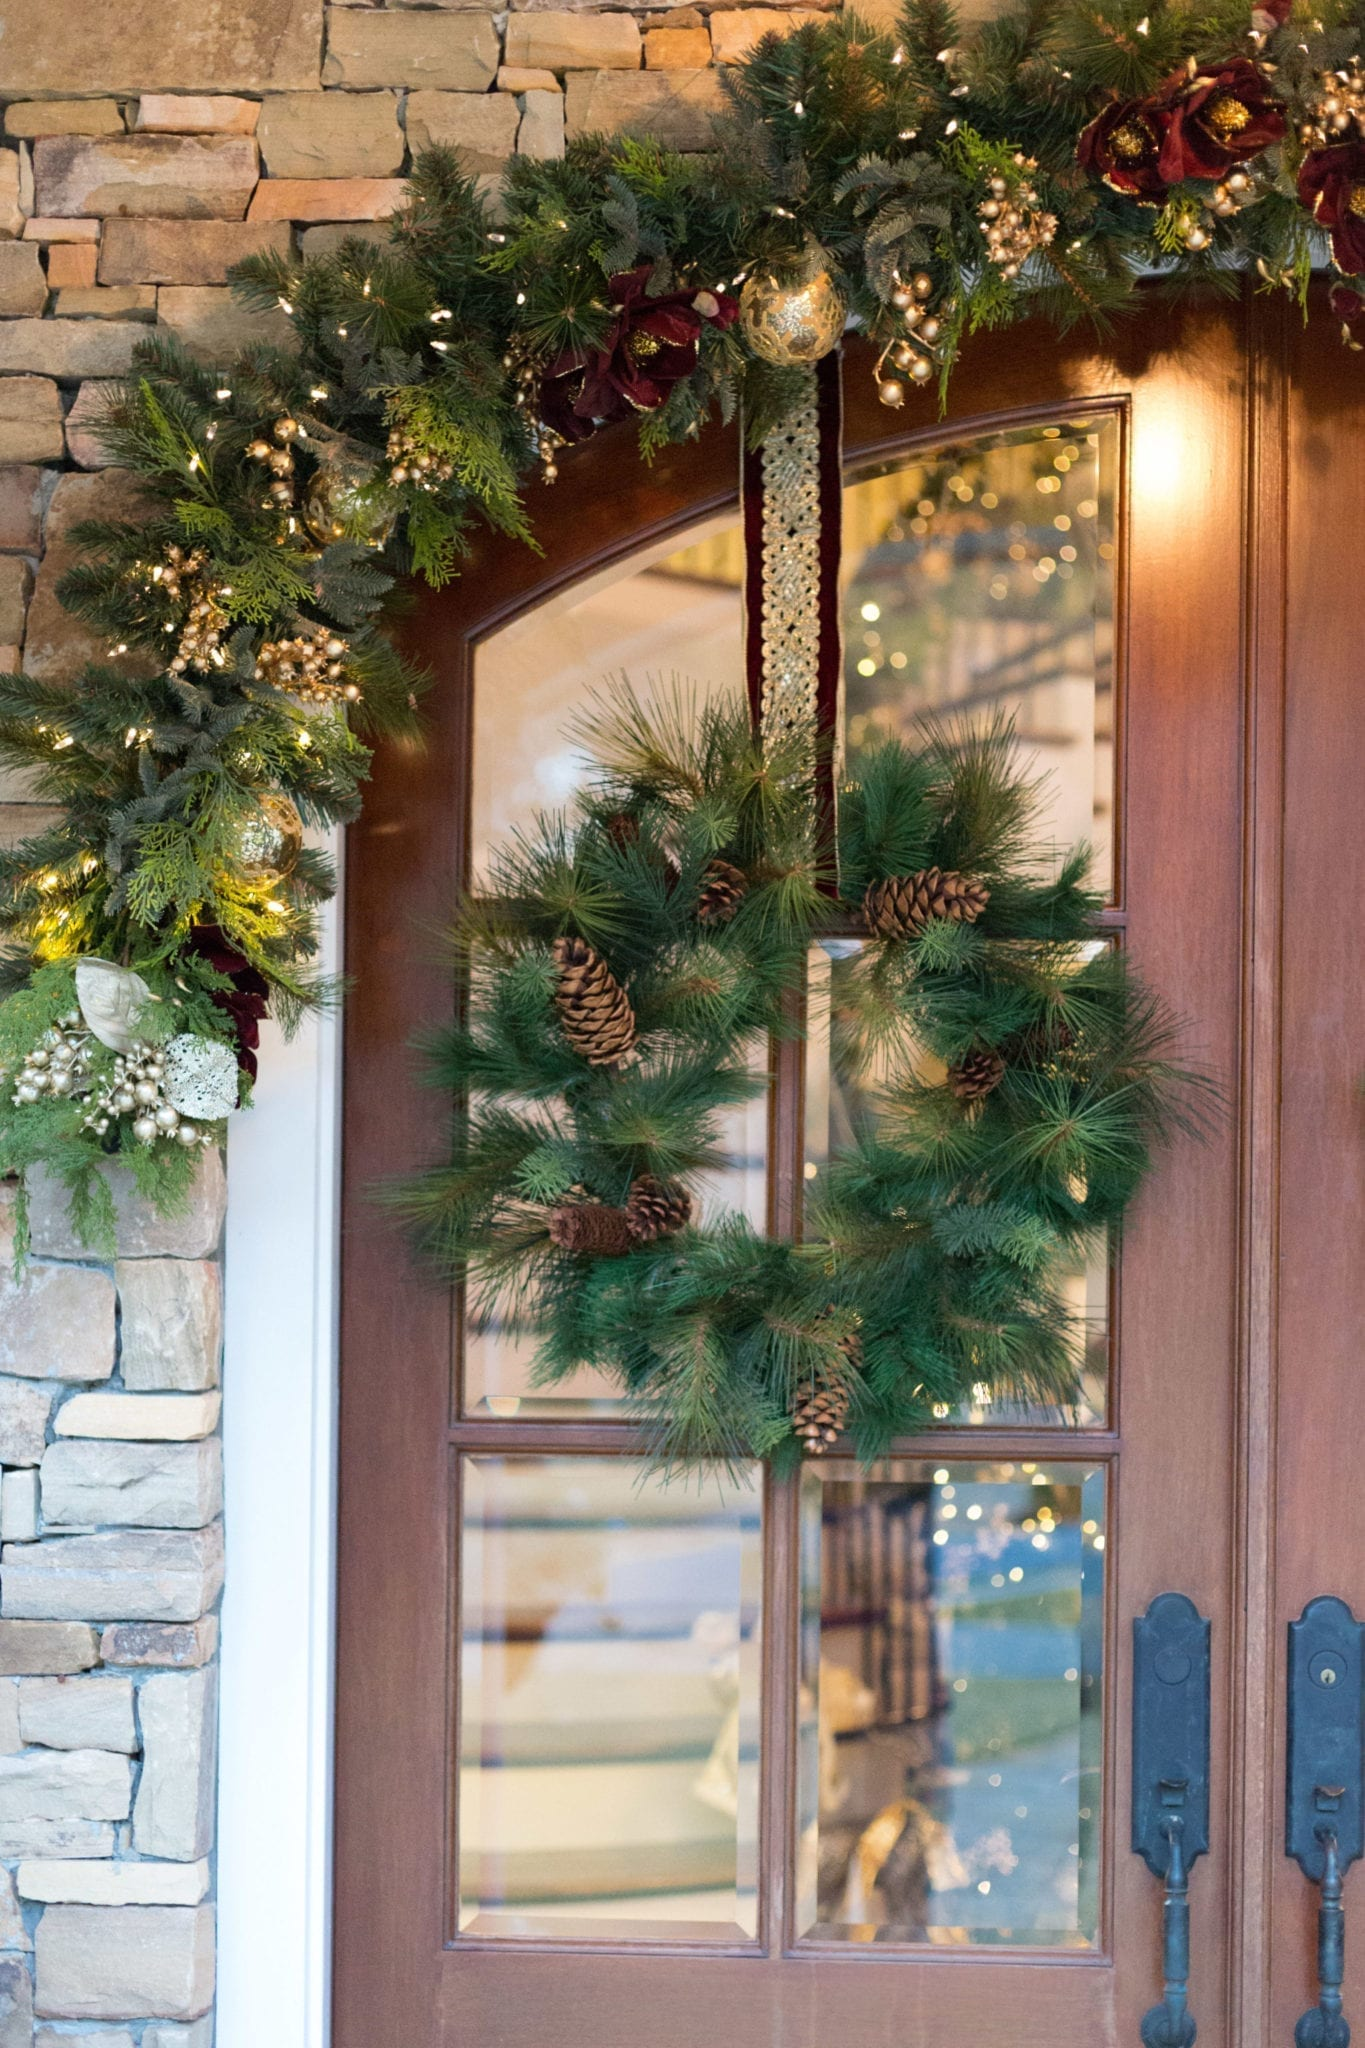 How to Hang a Wreath on a Door